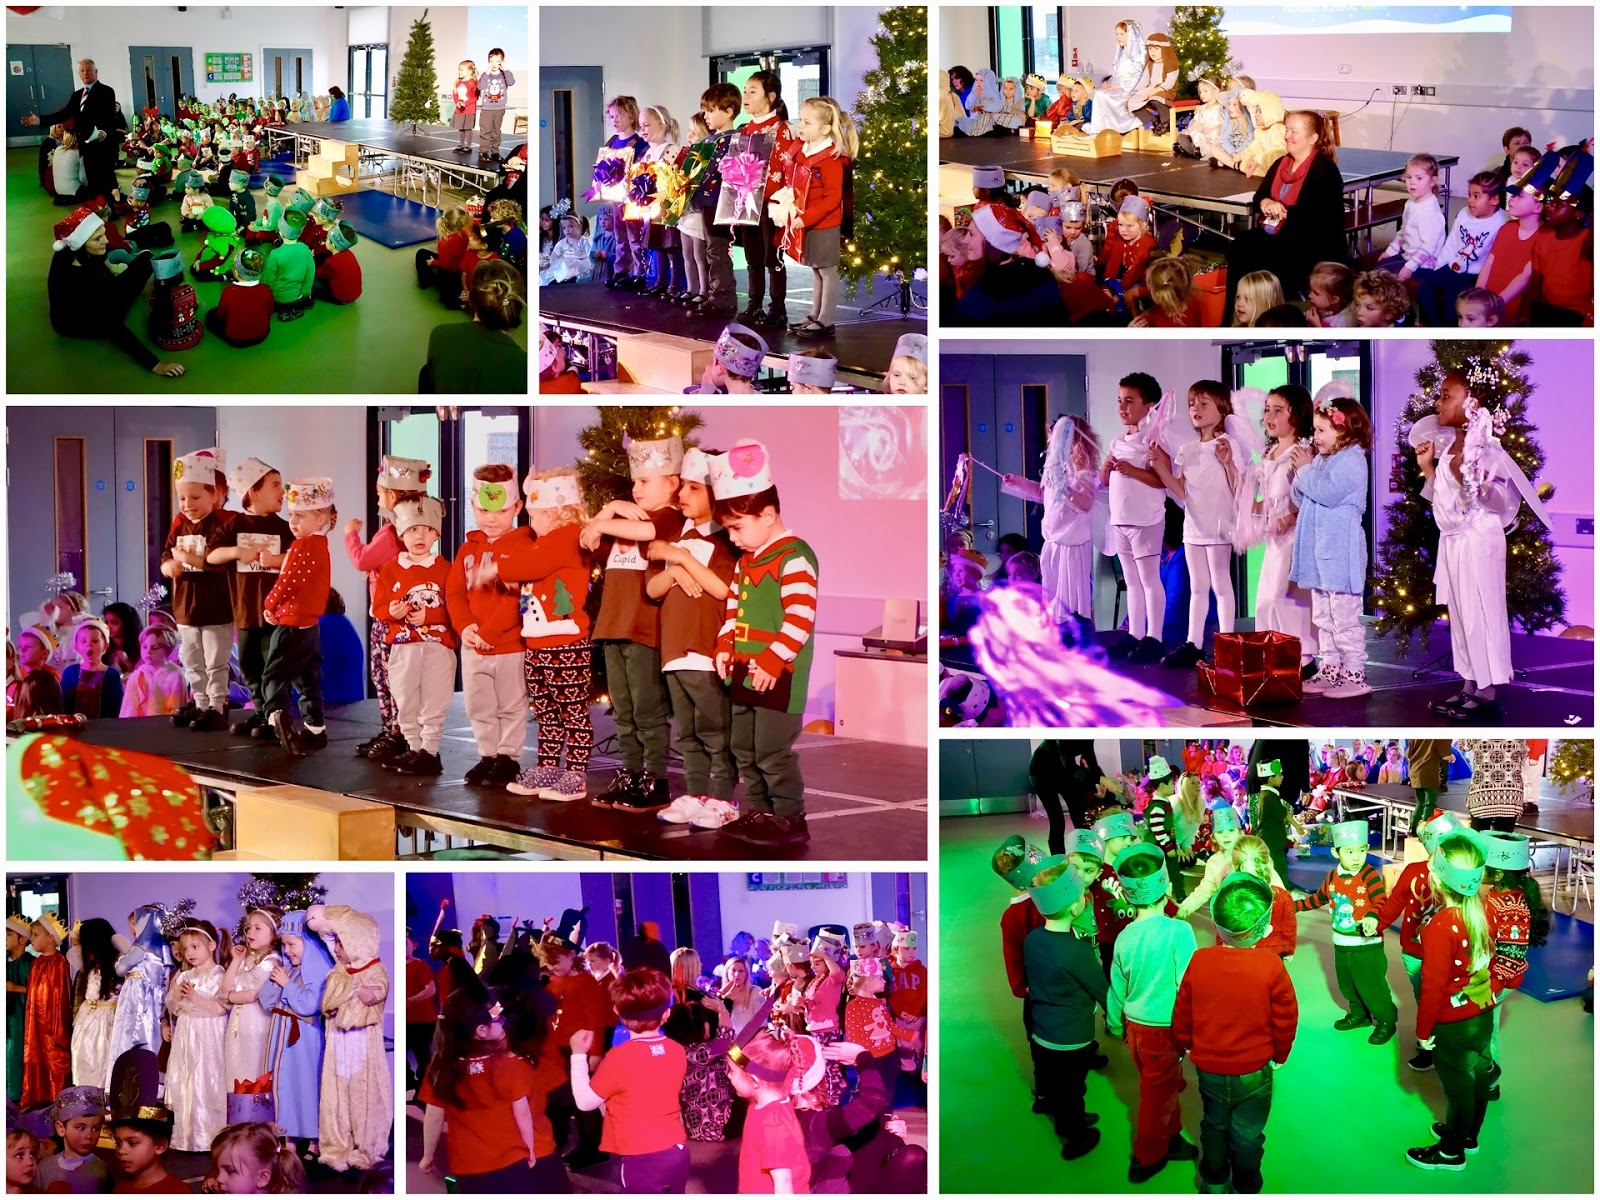 Hacton News: Early Years: Here We Go Round The Christmas Tree